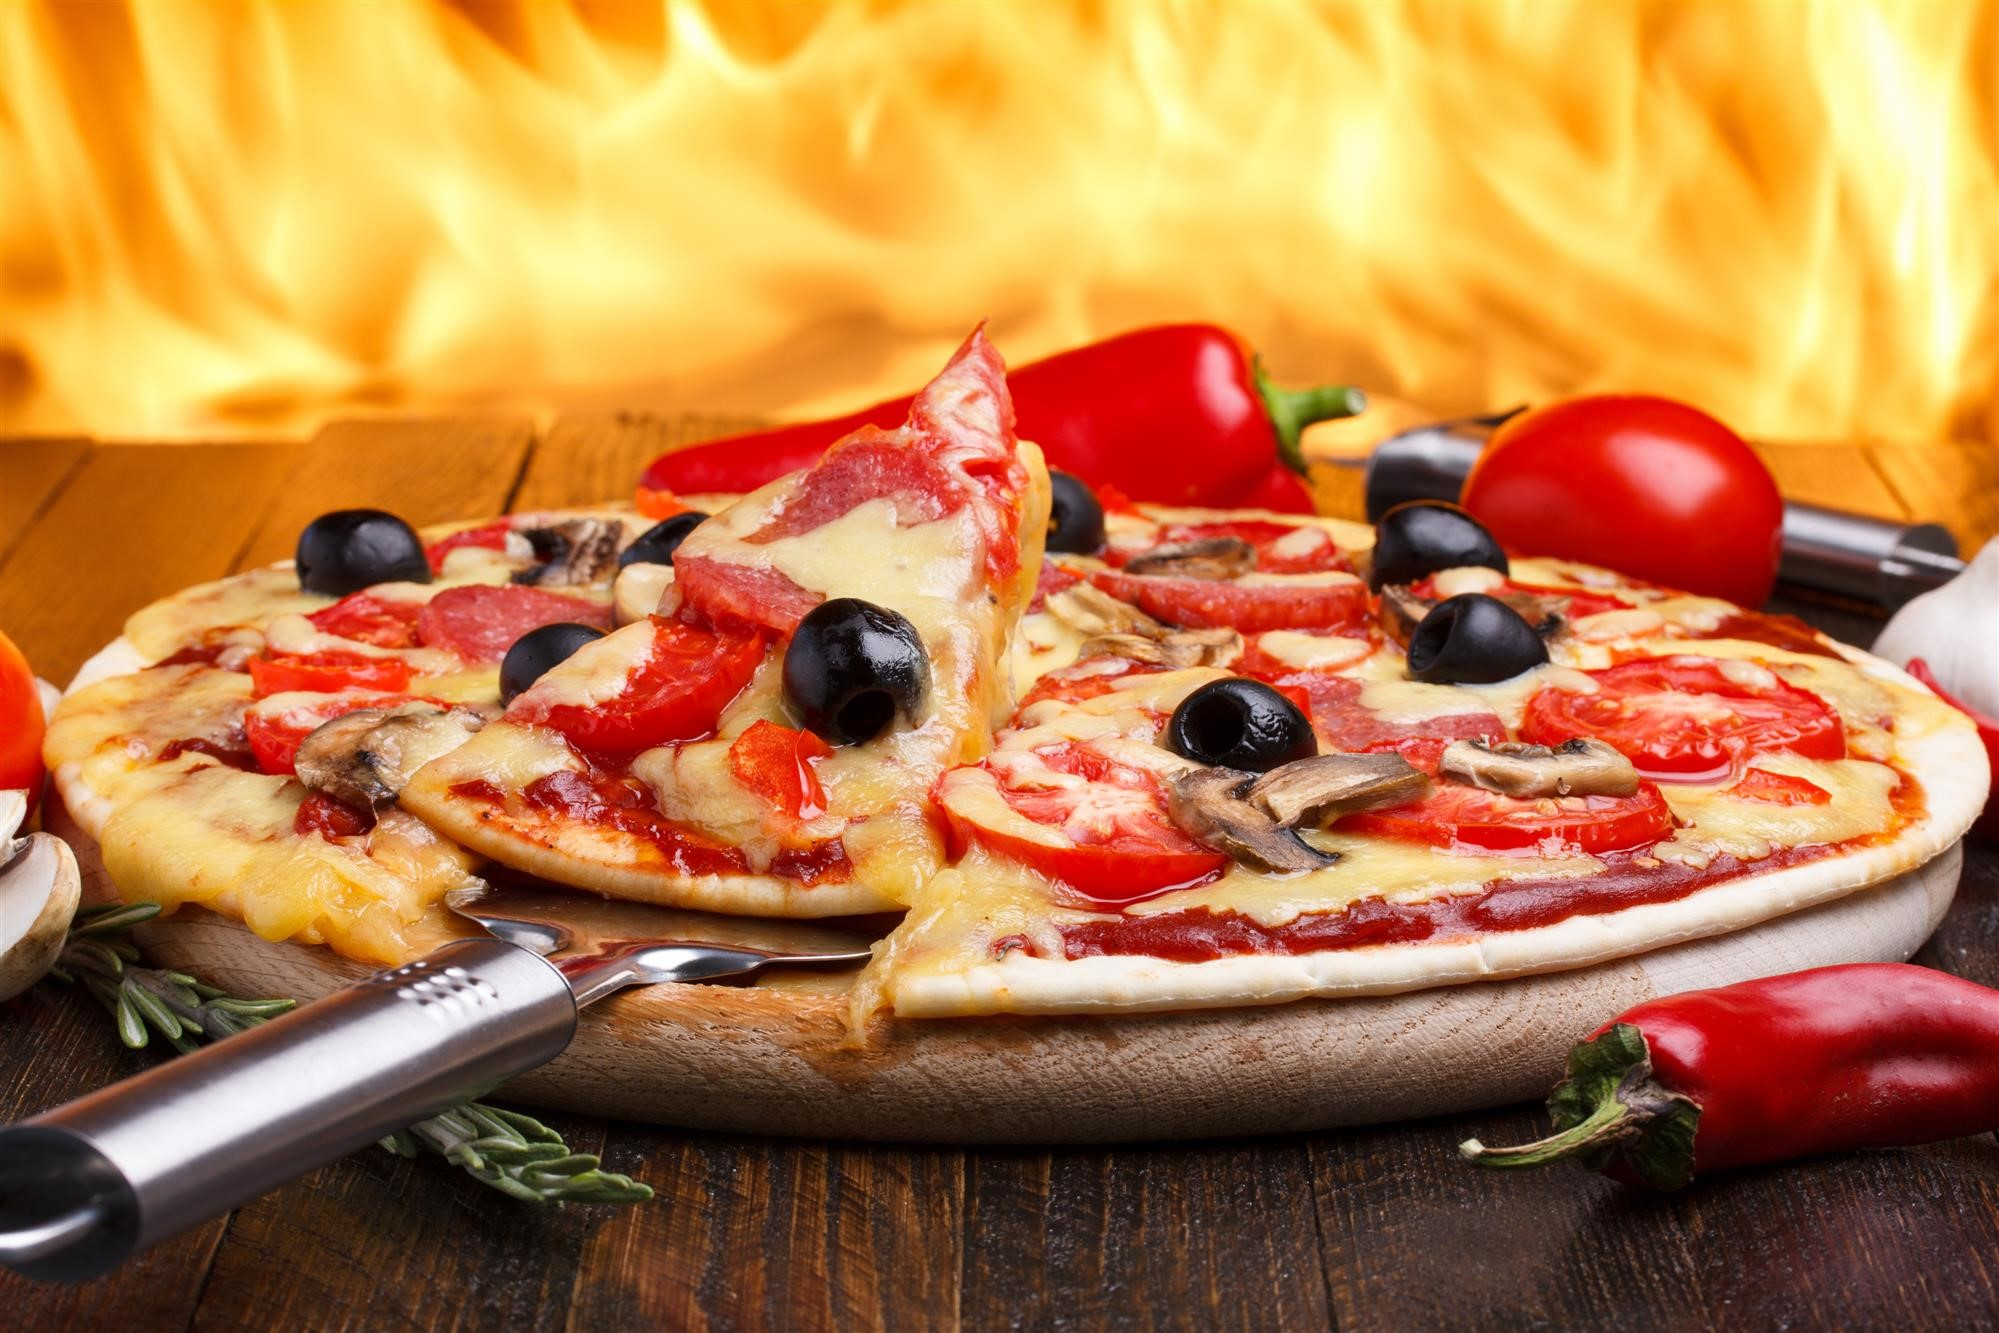 pizza made from a kamado grill